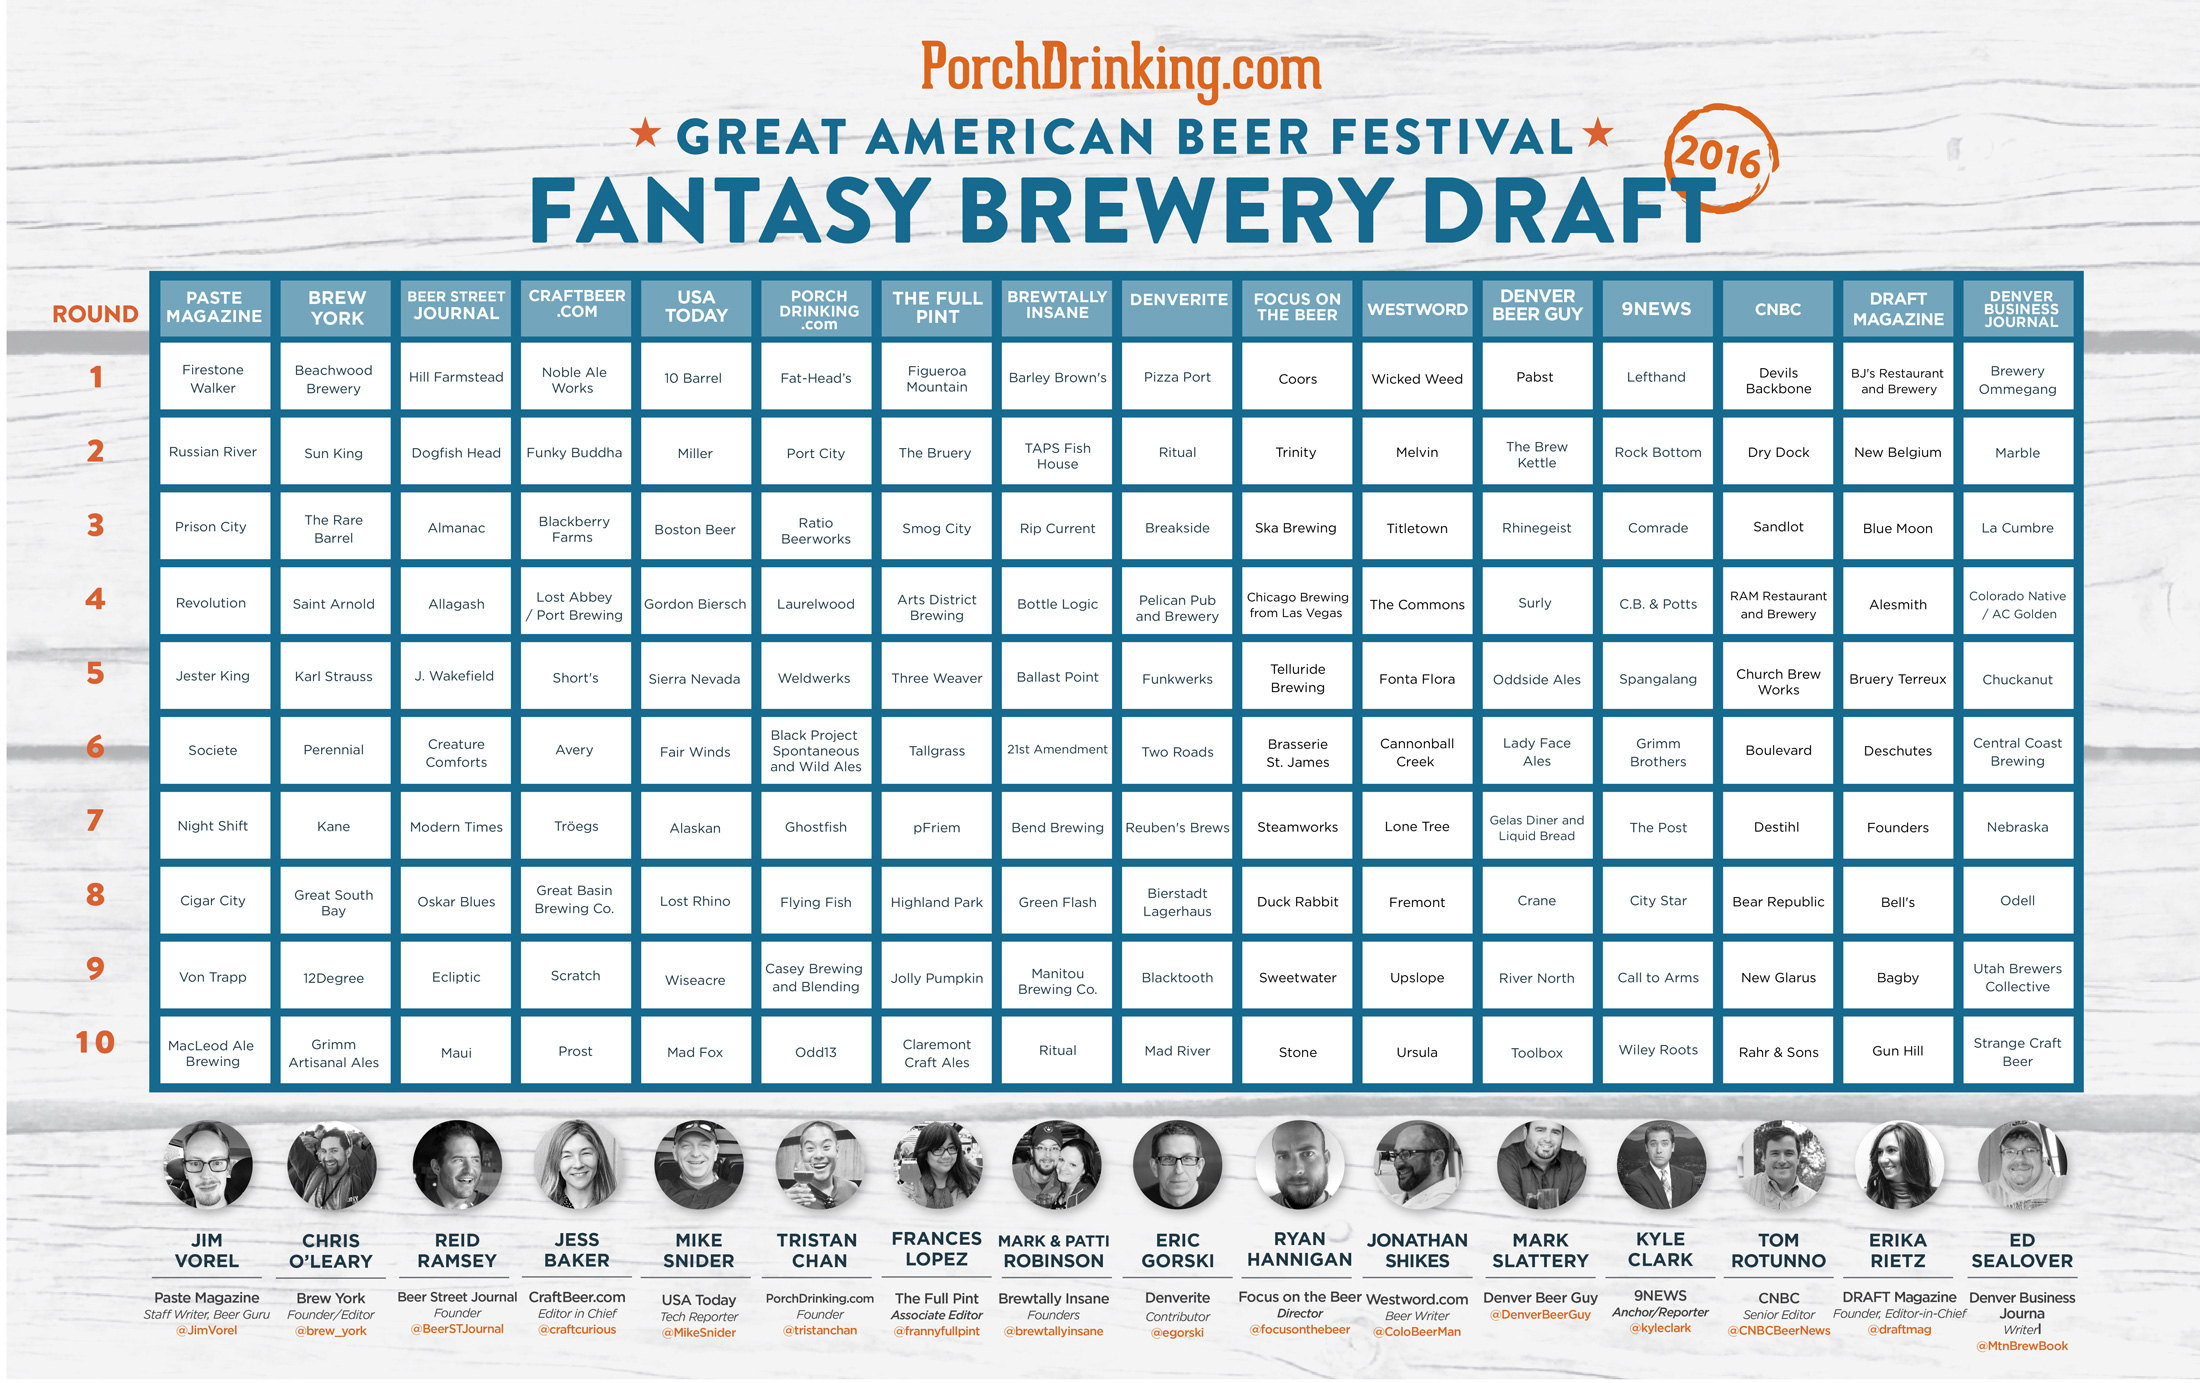 2016 GABF Fantasy Draft Results (Graphic courtesy of Erin Horn)